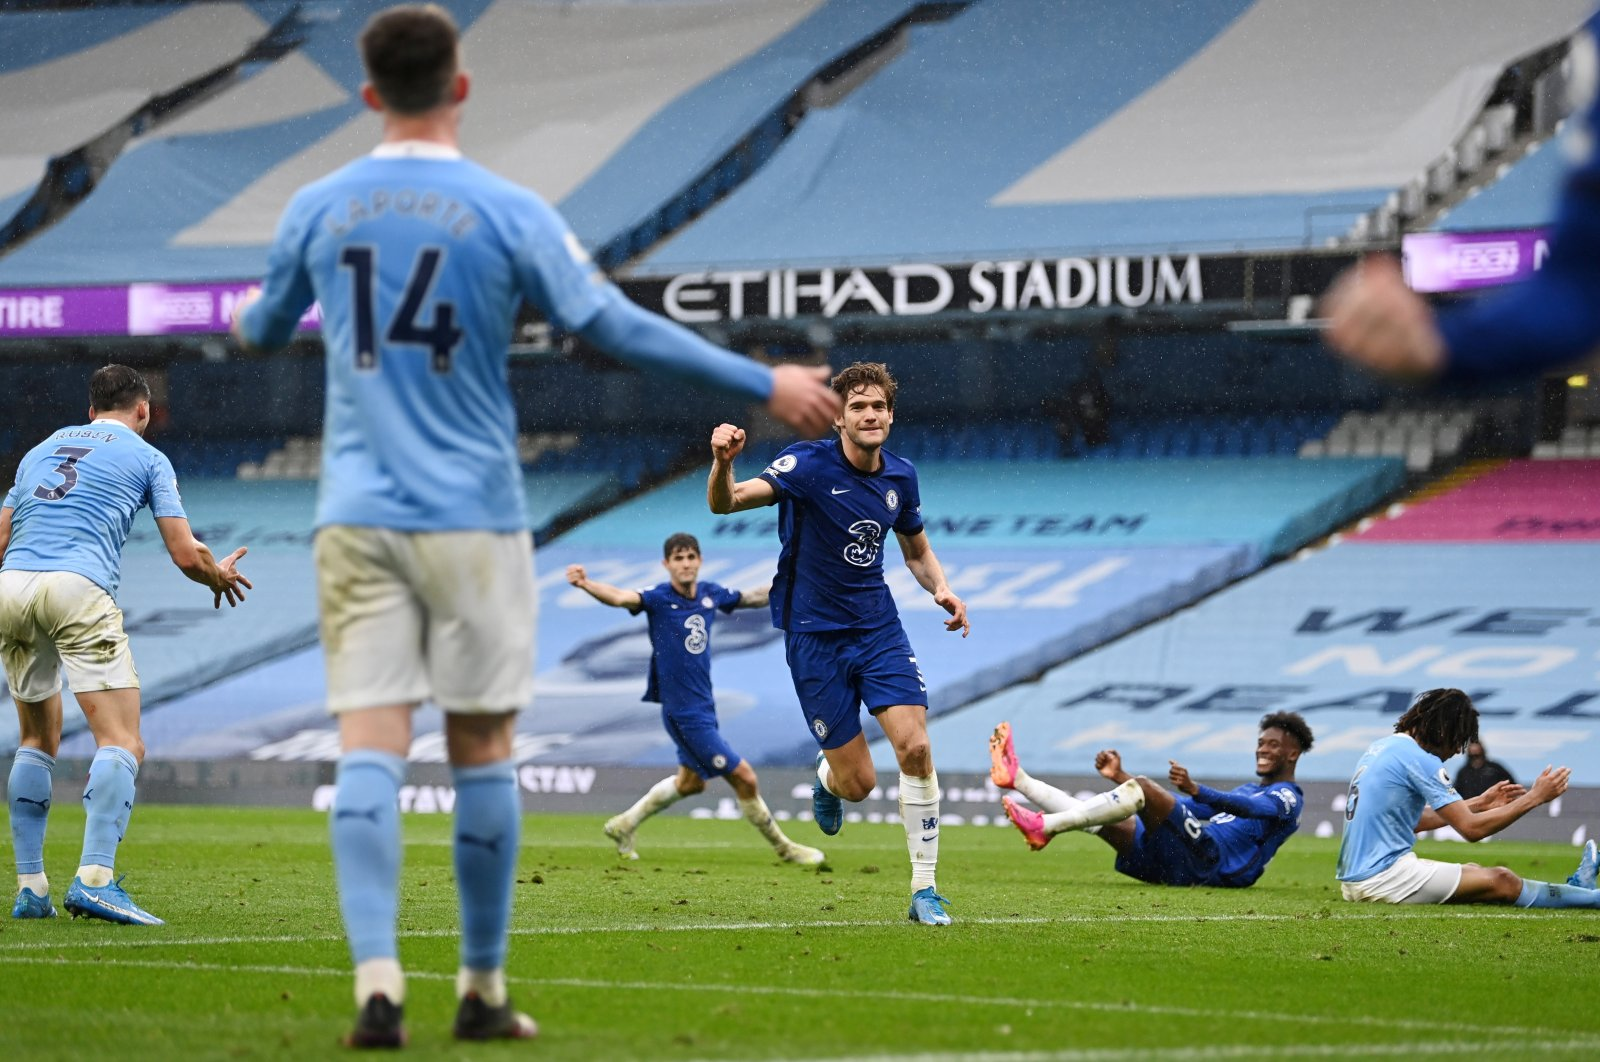 Chelsea's Marcos Alonso celebrates scoring a goal against Manchester City at the Etihad Stadium, Manchester, Britain, May 8, 2021.